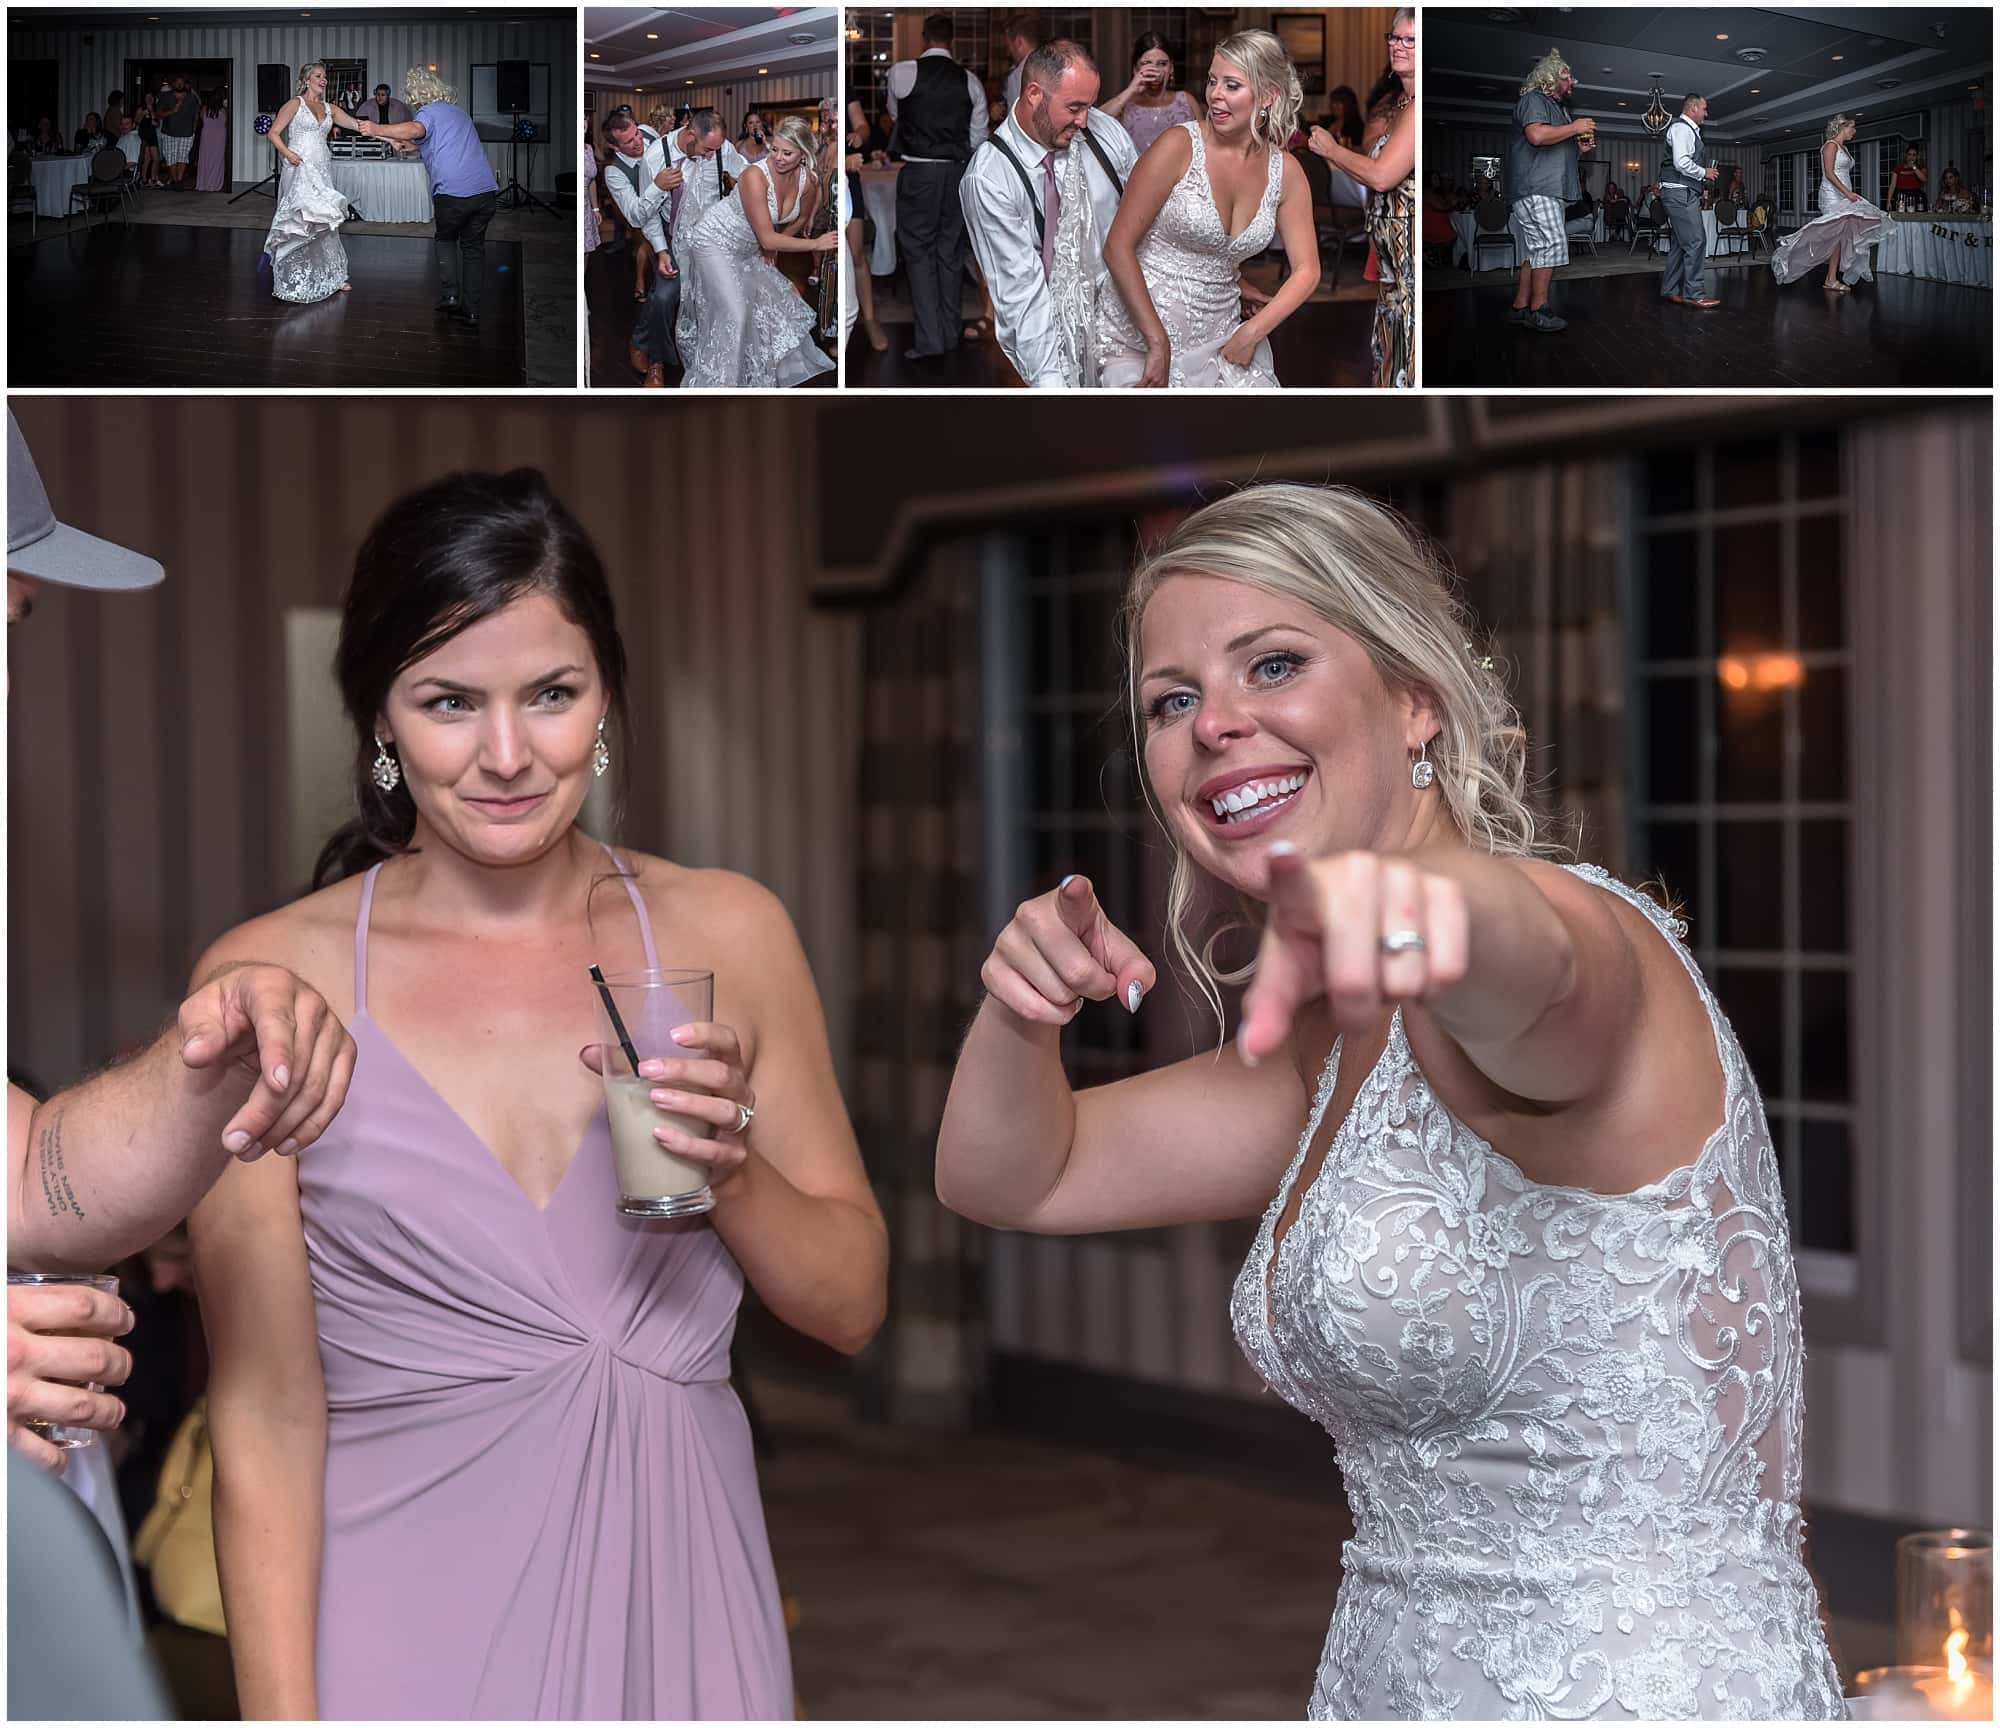 The bride and groom dancing with their guests during their wedding reception at the Ashburn Golf Club in Halifax, NS.